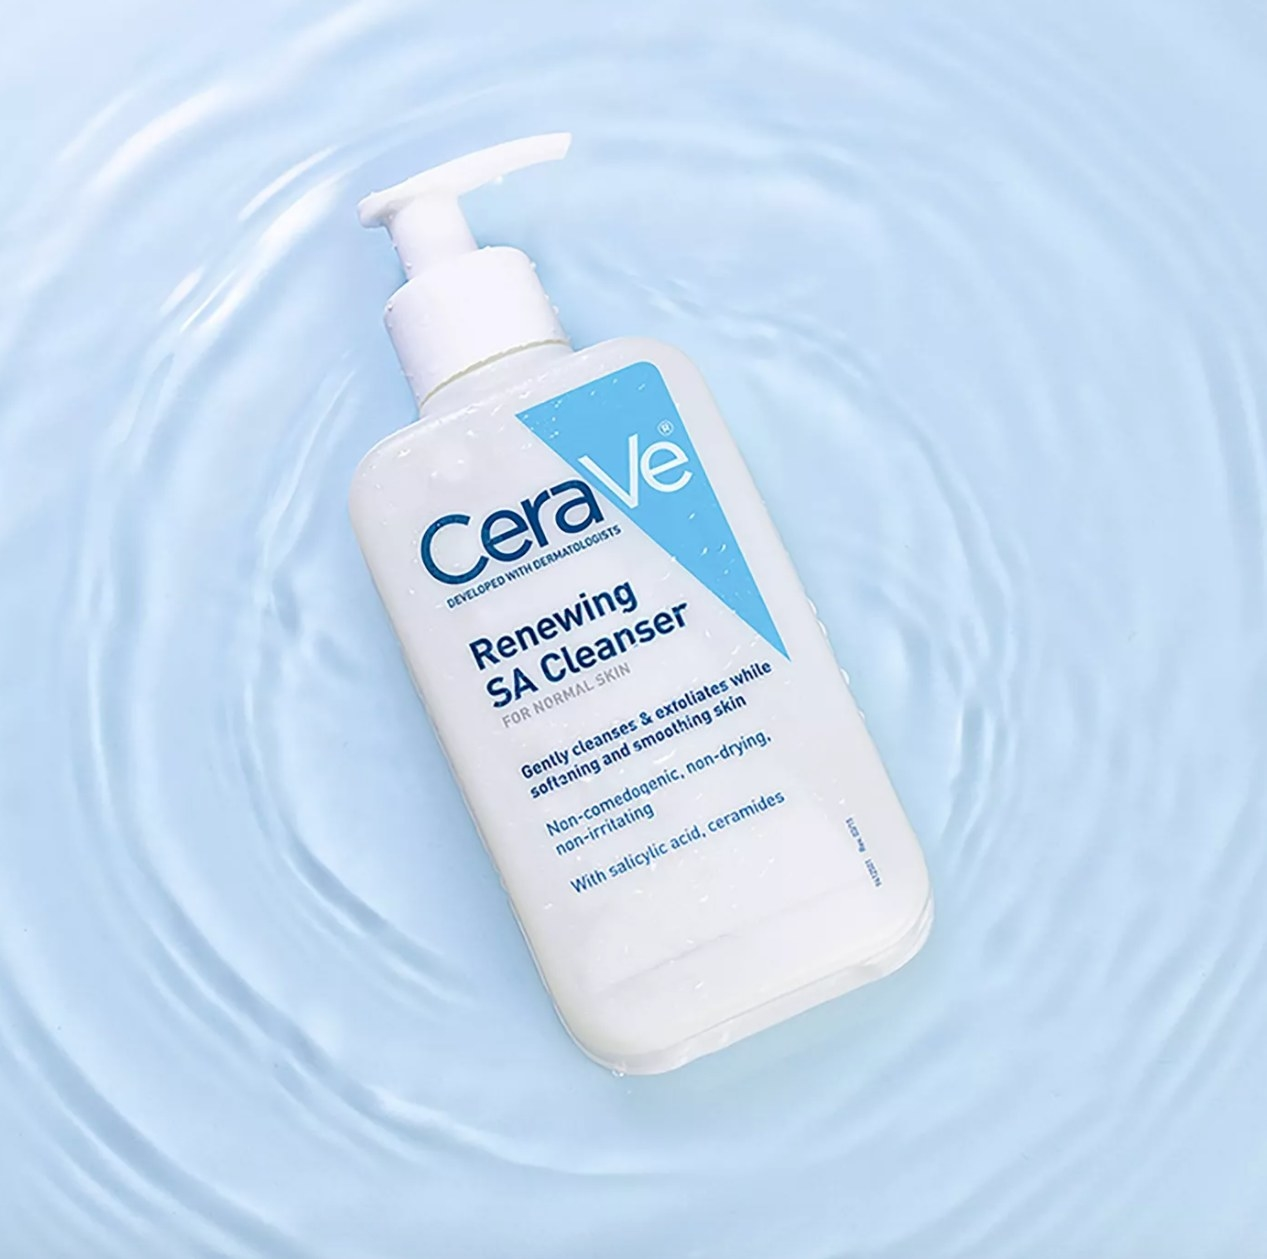 cerave cleanser against light blue water looking background